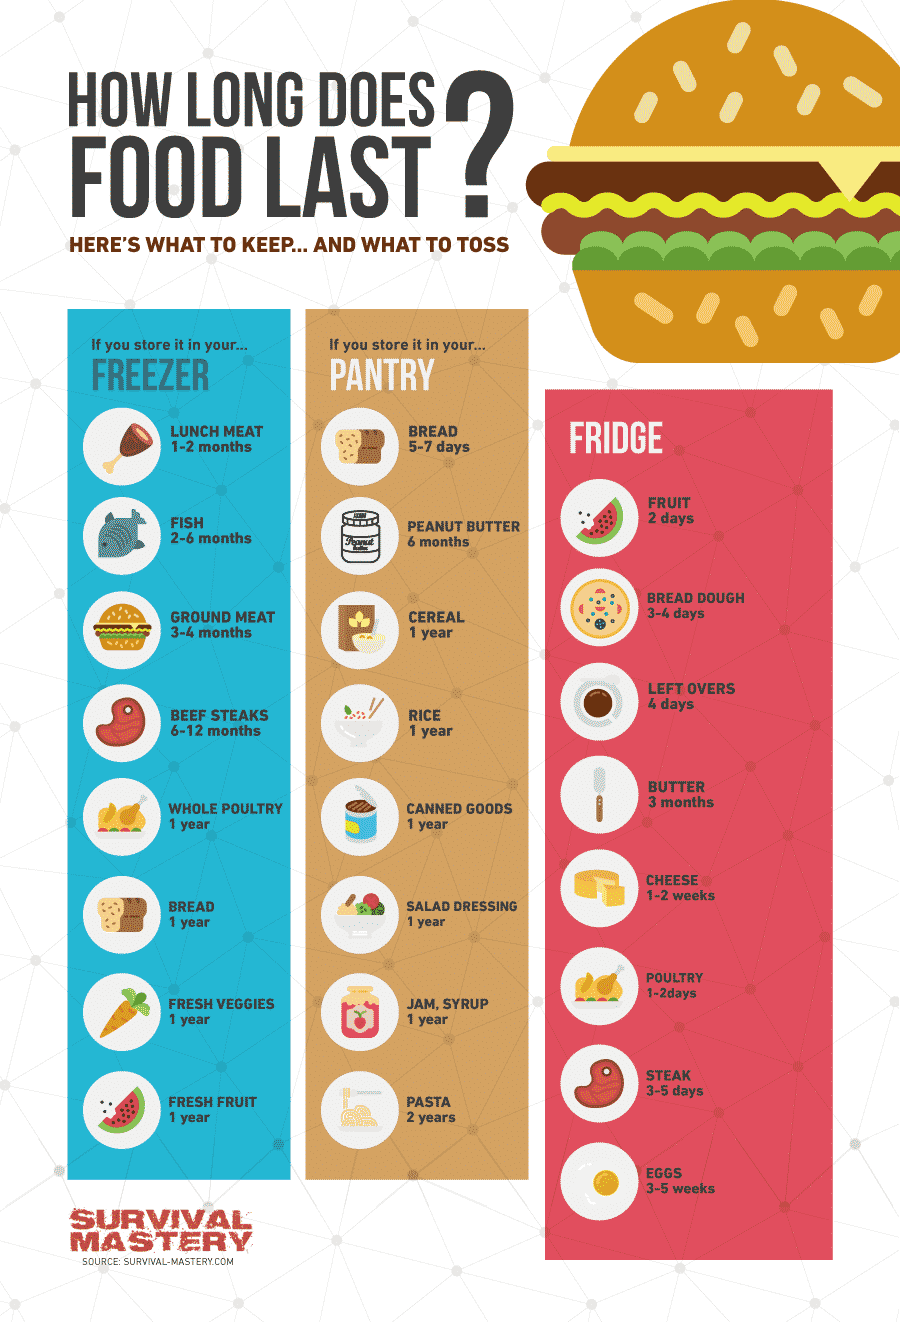 How long does food last infographic